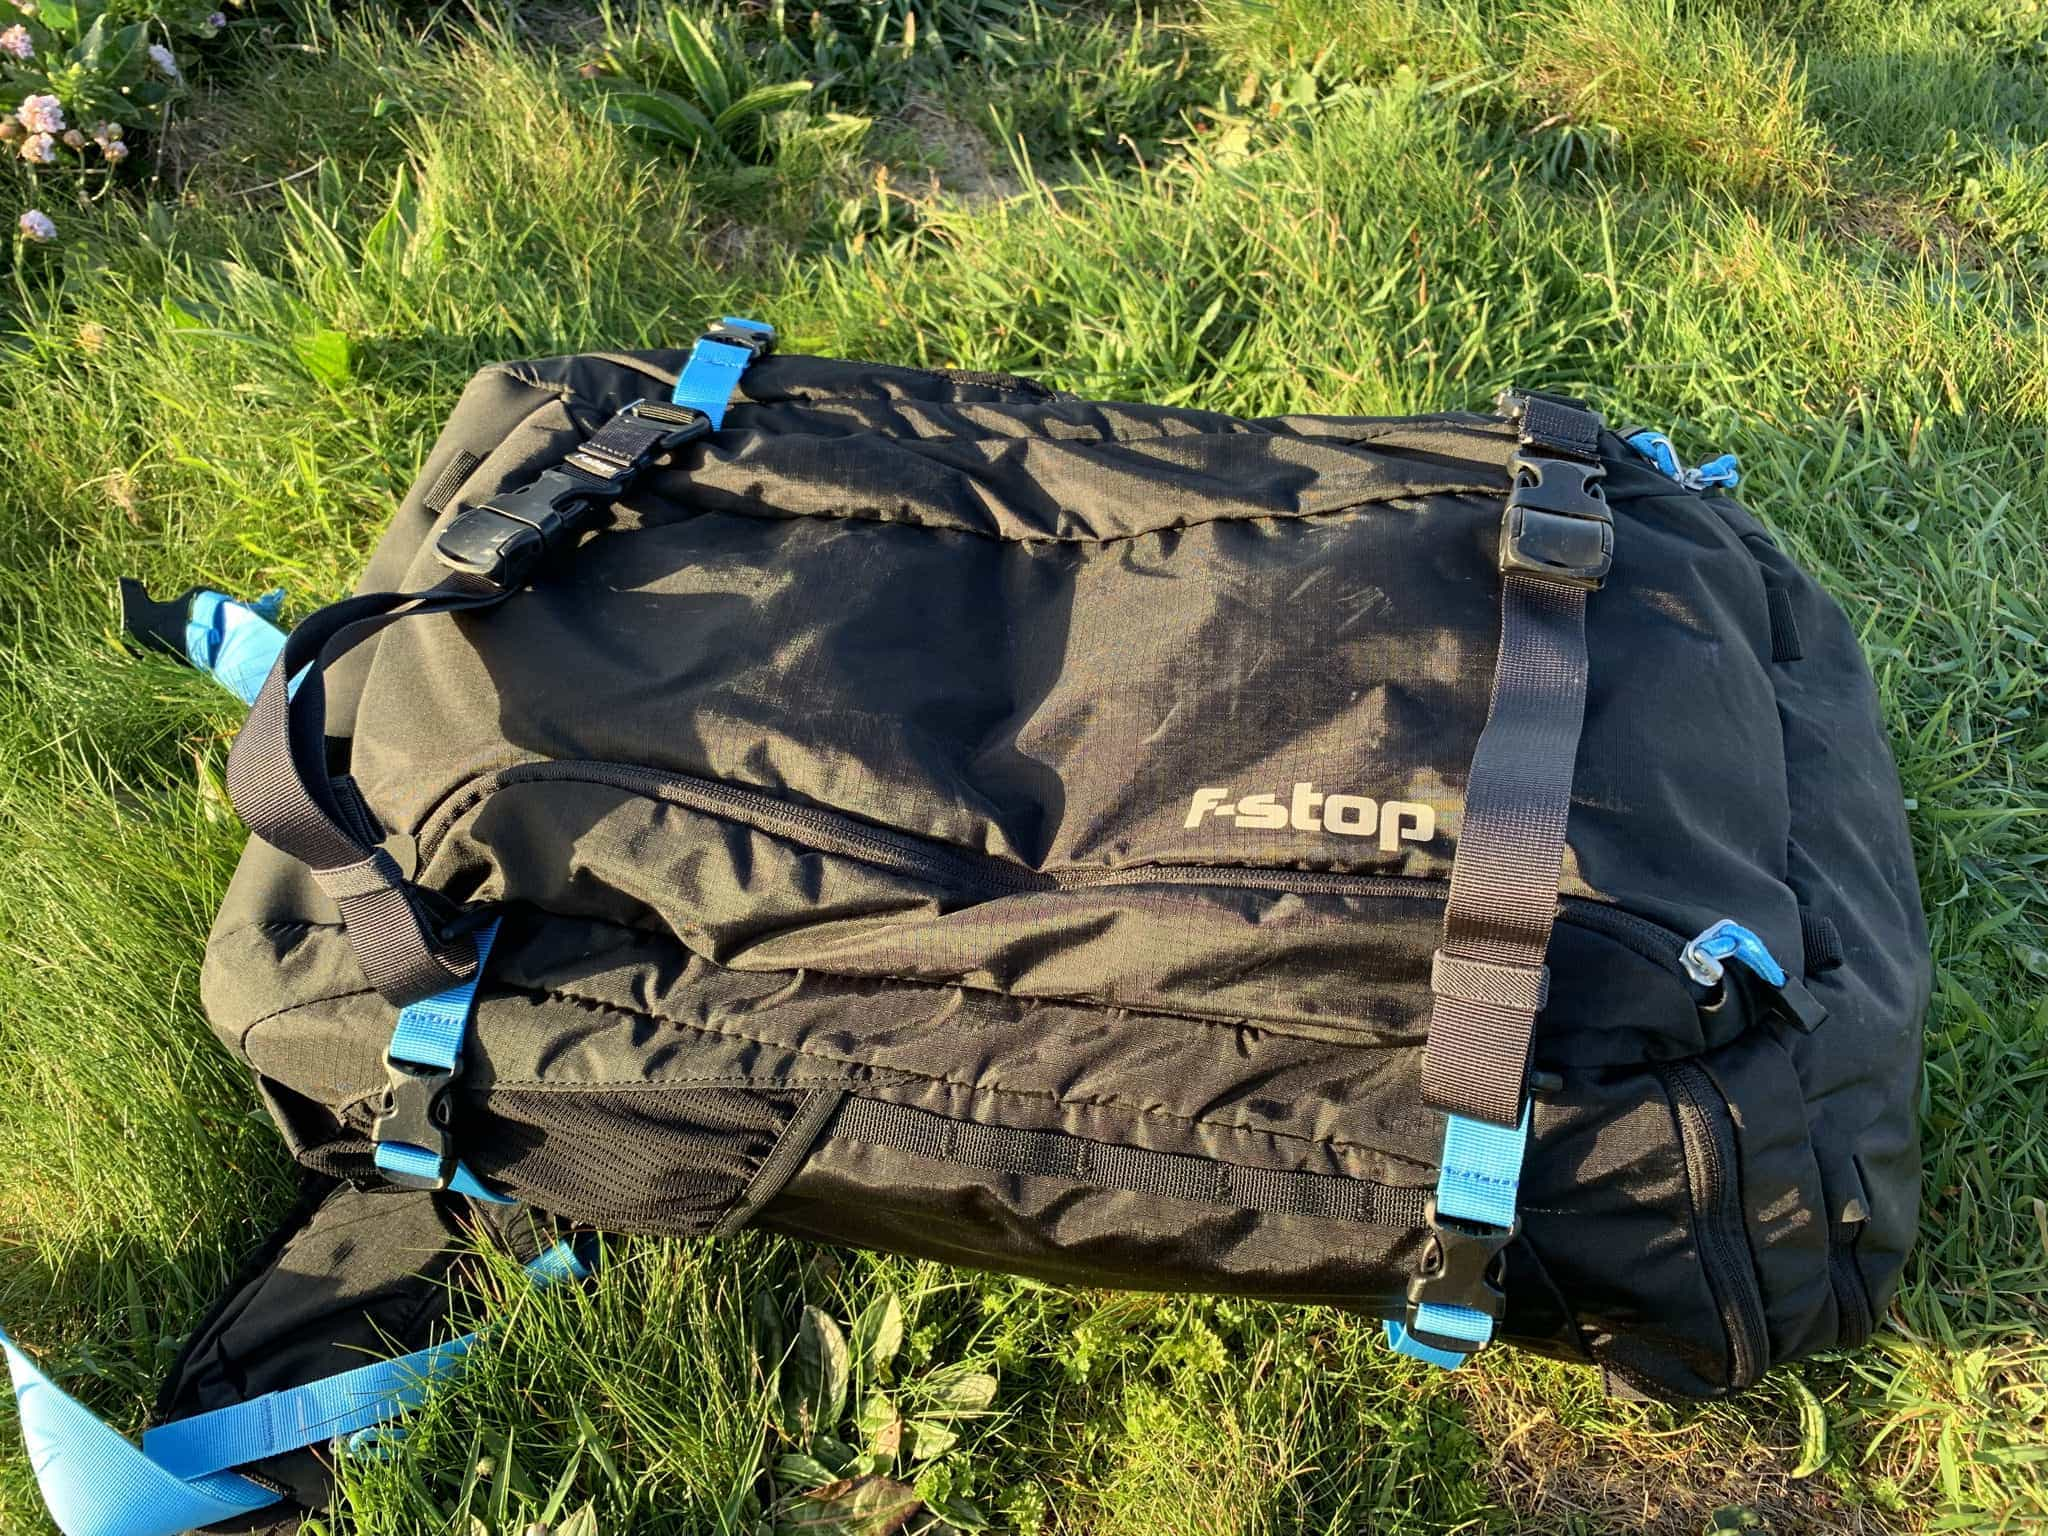 recensione review zaino backpack fotografico f-stop gear loka ul 2